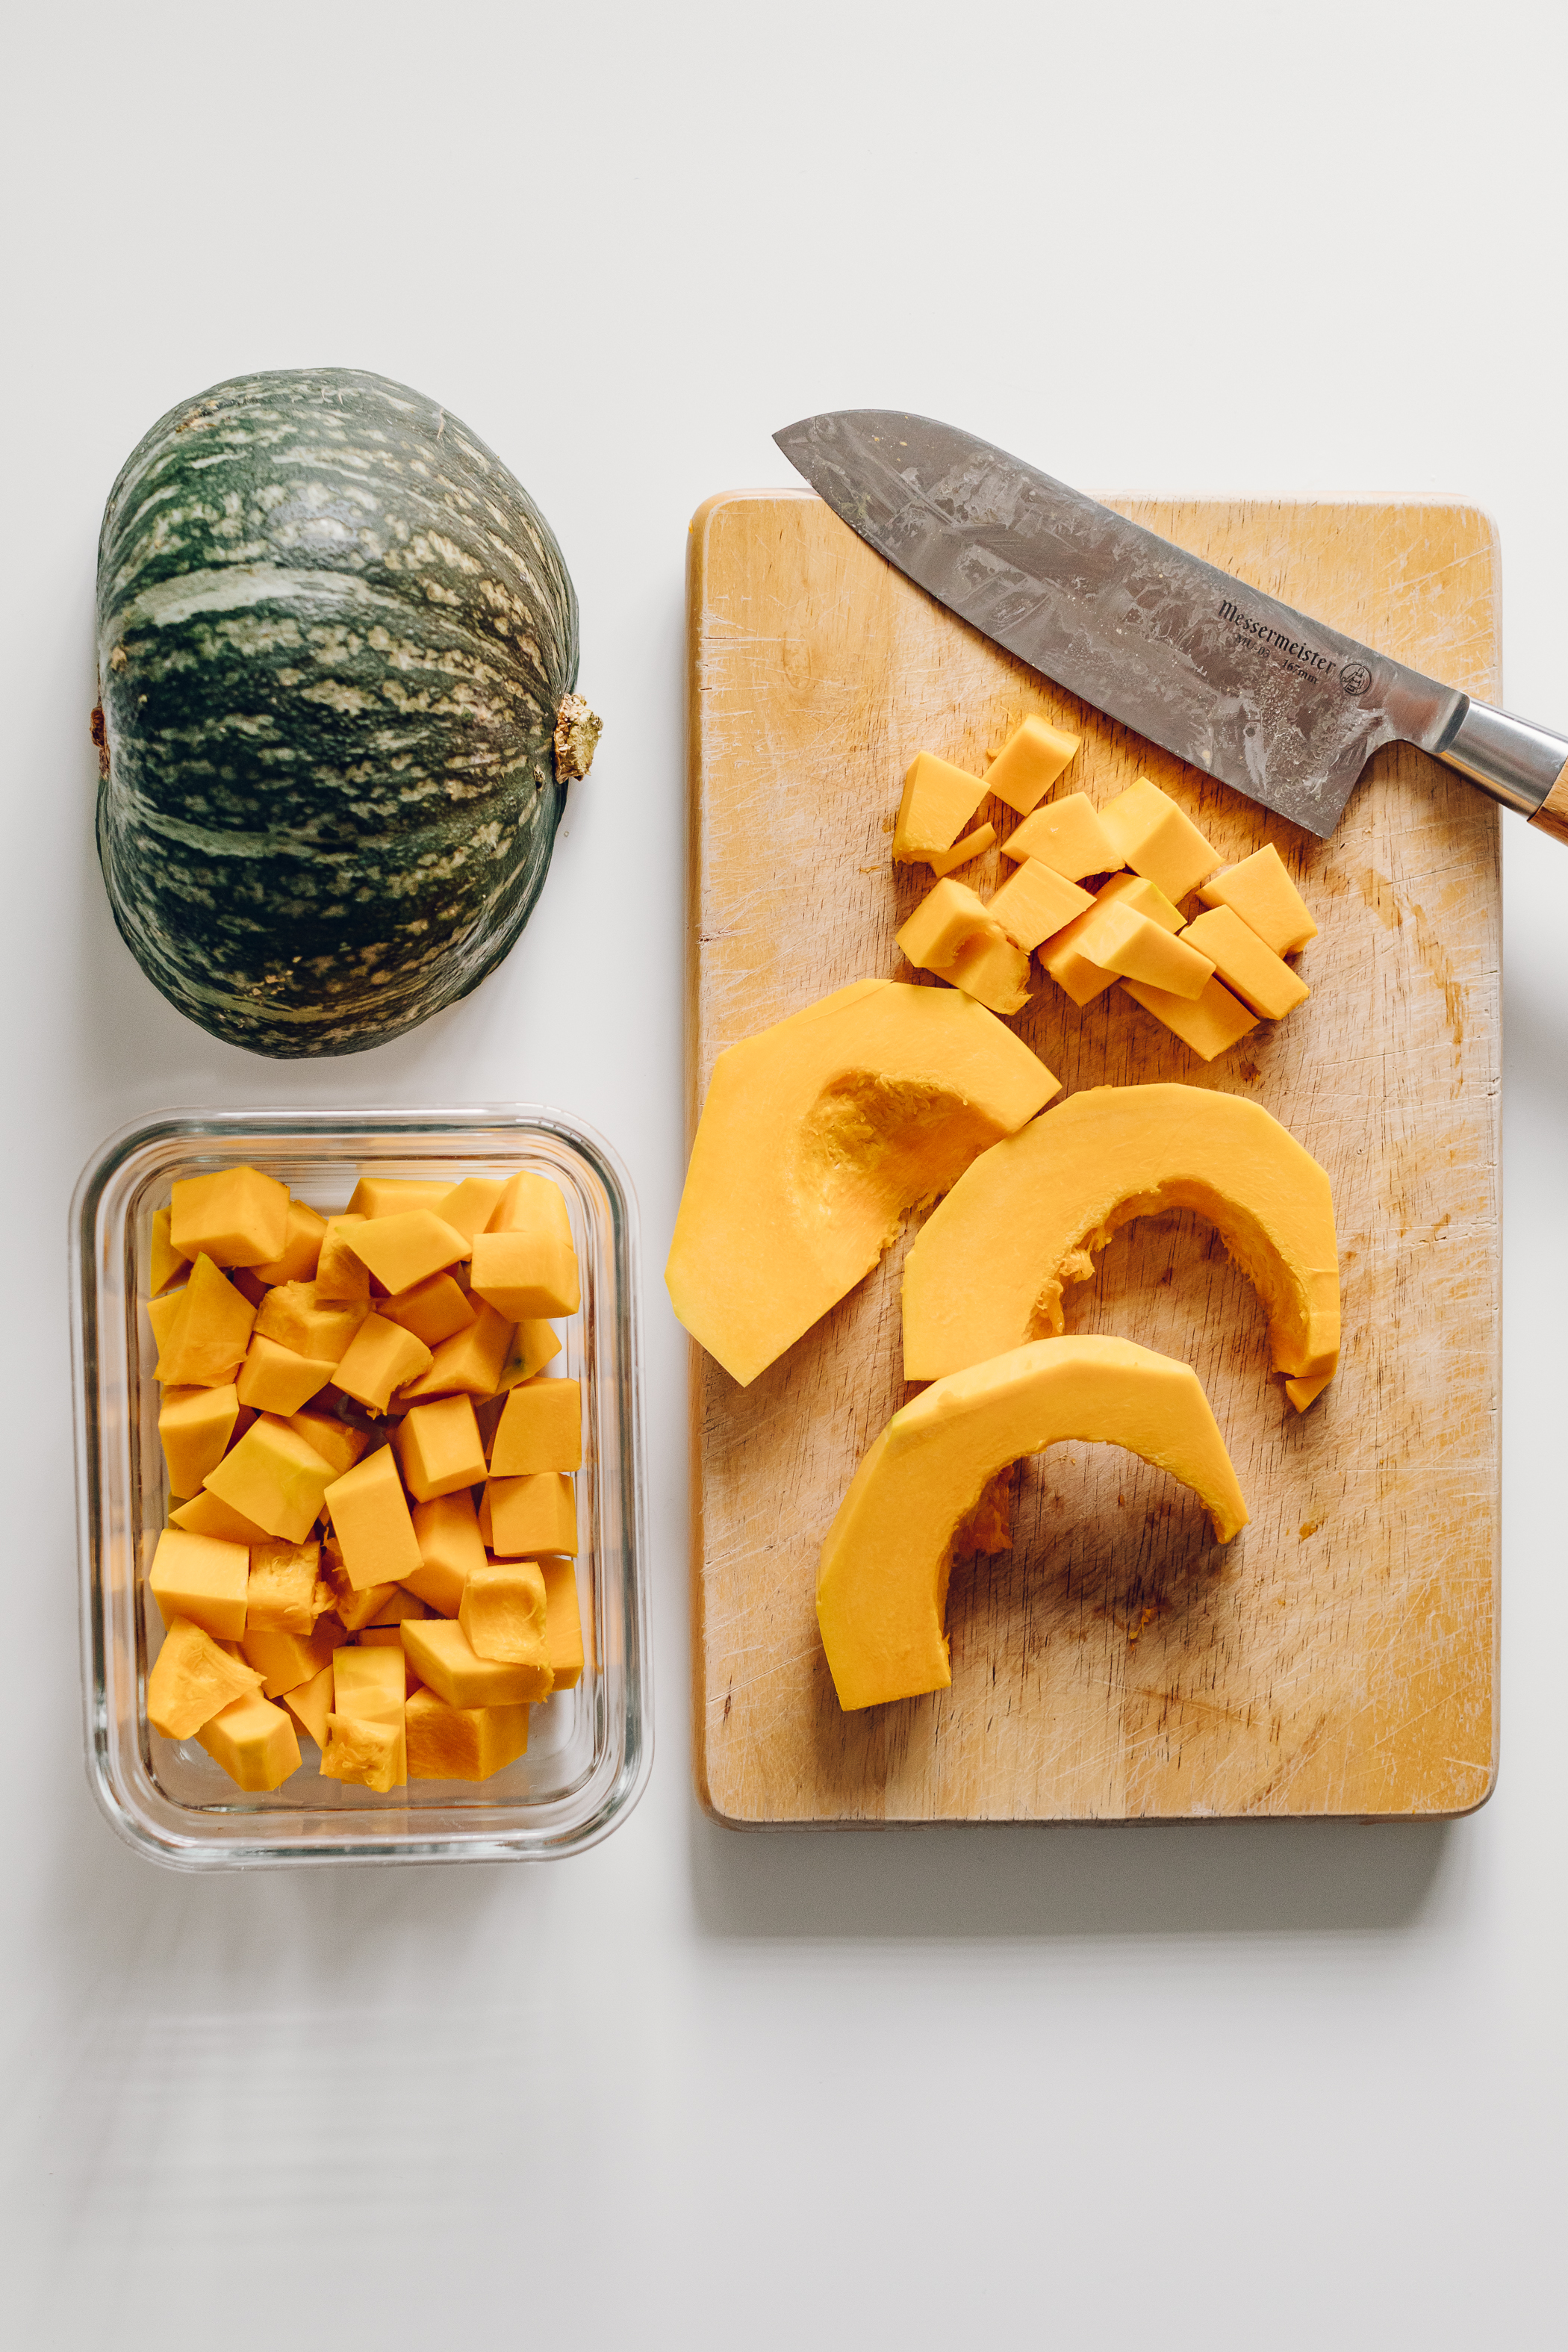 Kabocha Squash (Pumpkin) - The kabocha squash is the variety of pumpkin we eat the most of in the fall season. This method works well for butternut squashes (and I'm sure others) too, and keeps fresh for one week.Step 1: Wash any dirt off of the pumpkin and dry.Step 2: With a sharp knife, carefully slice the pumpkin in half and scoop out the seeds.Step 3: Slice the skin off of each half (again, carefully).Step 4: Dice into small cubes, and place in glass containers.Step 5: Store in the fridge and use throughout the week.Tip: You can slice and roast this pumpkin with the skin on if you prefer, I just enjoy my pumpkin this way.Use: I love throwing a few handfuls into my steamer basket meals in the evening to then enjoy with hummus or a drizzle of tahini and lemon juice. Also for simmering in lentil soups!